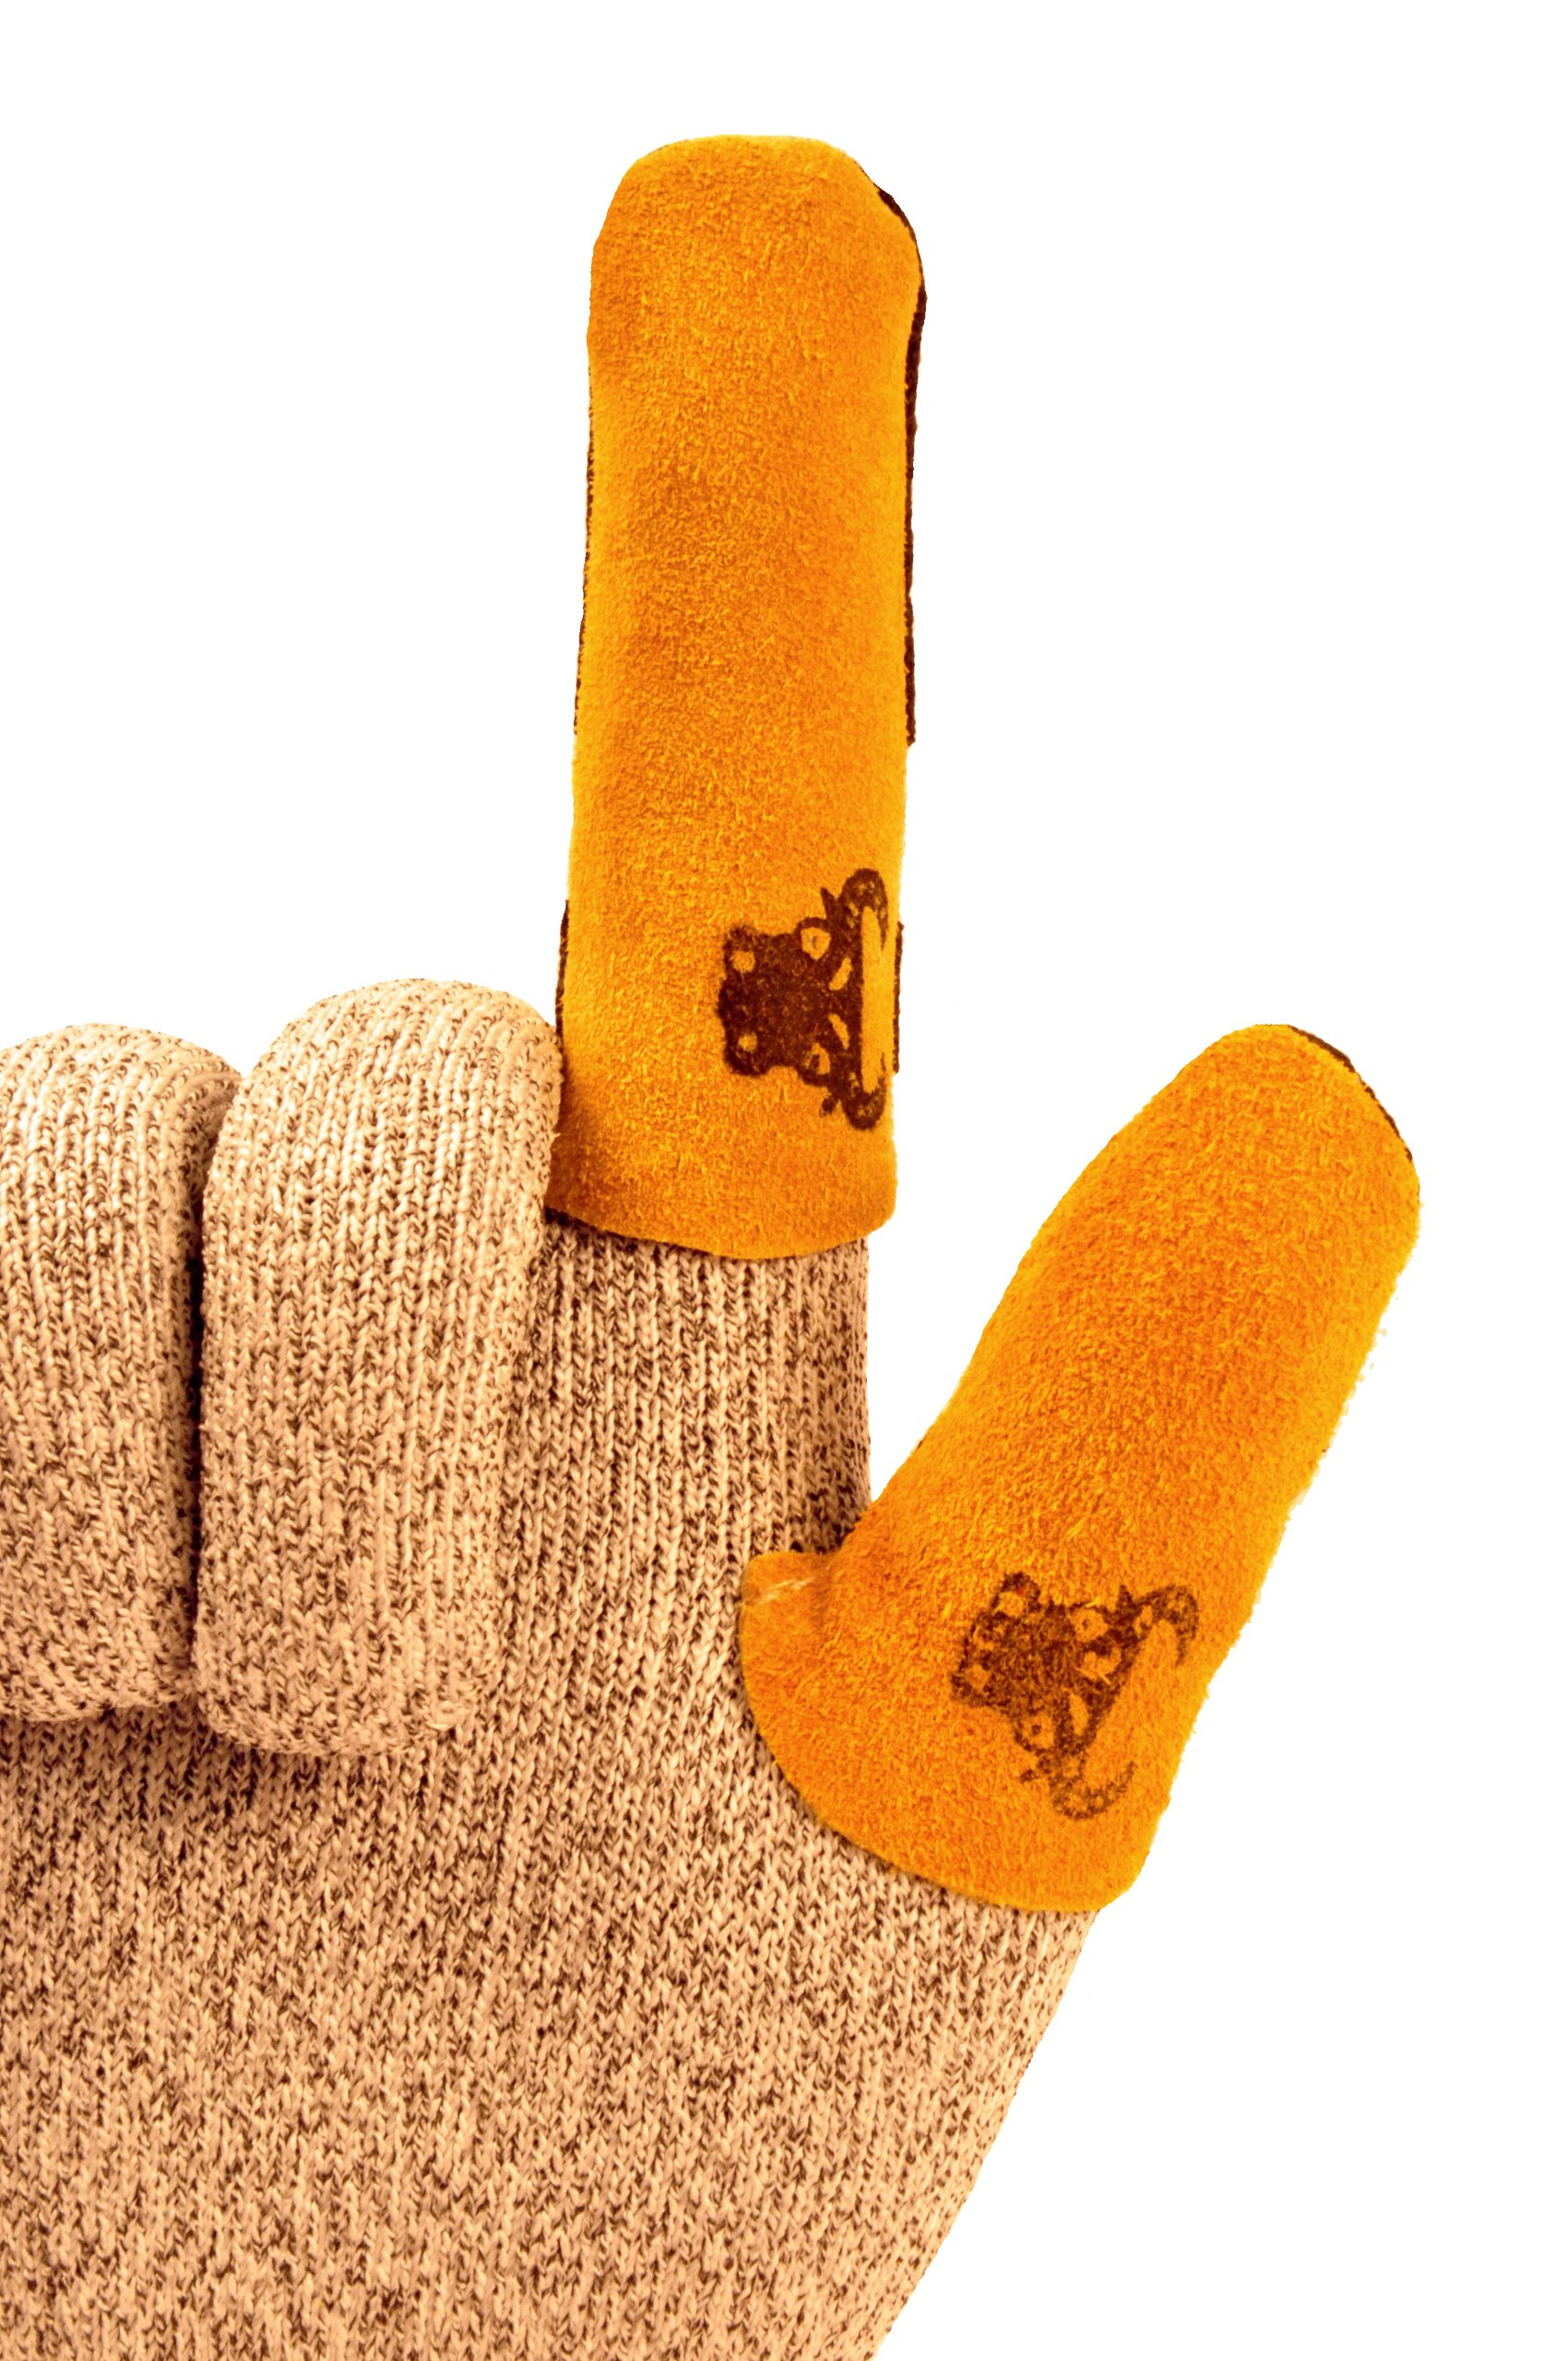 GF Gloves 8126XL-100 Cowhide Leather Thumb Guard, X-Large, Yellow (Pack of 20) by GF Gloves